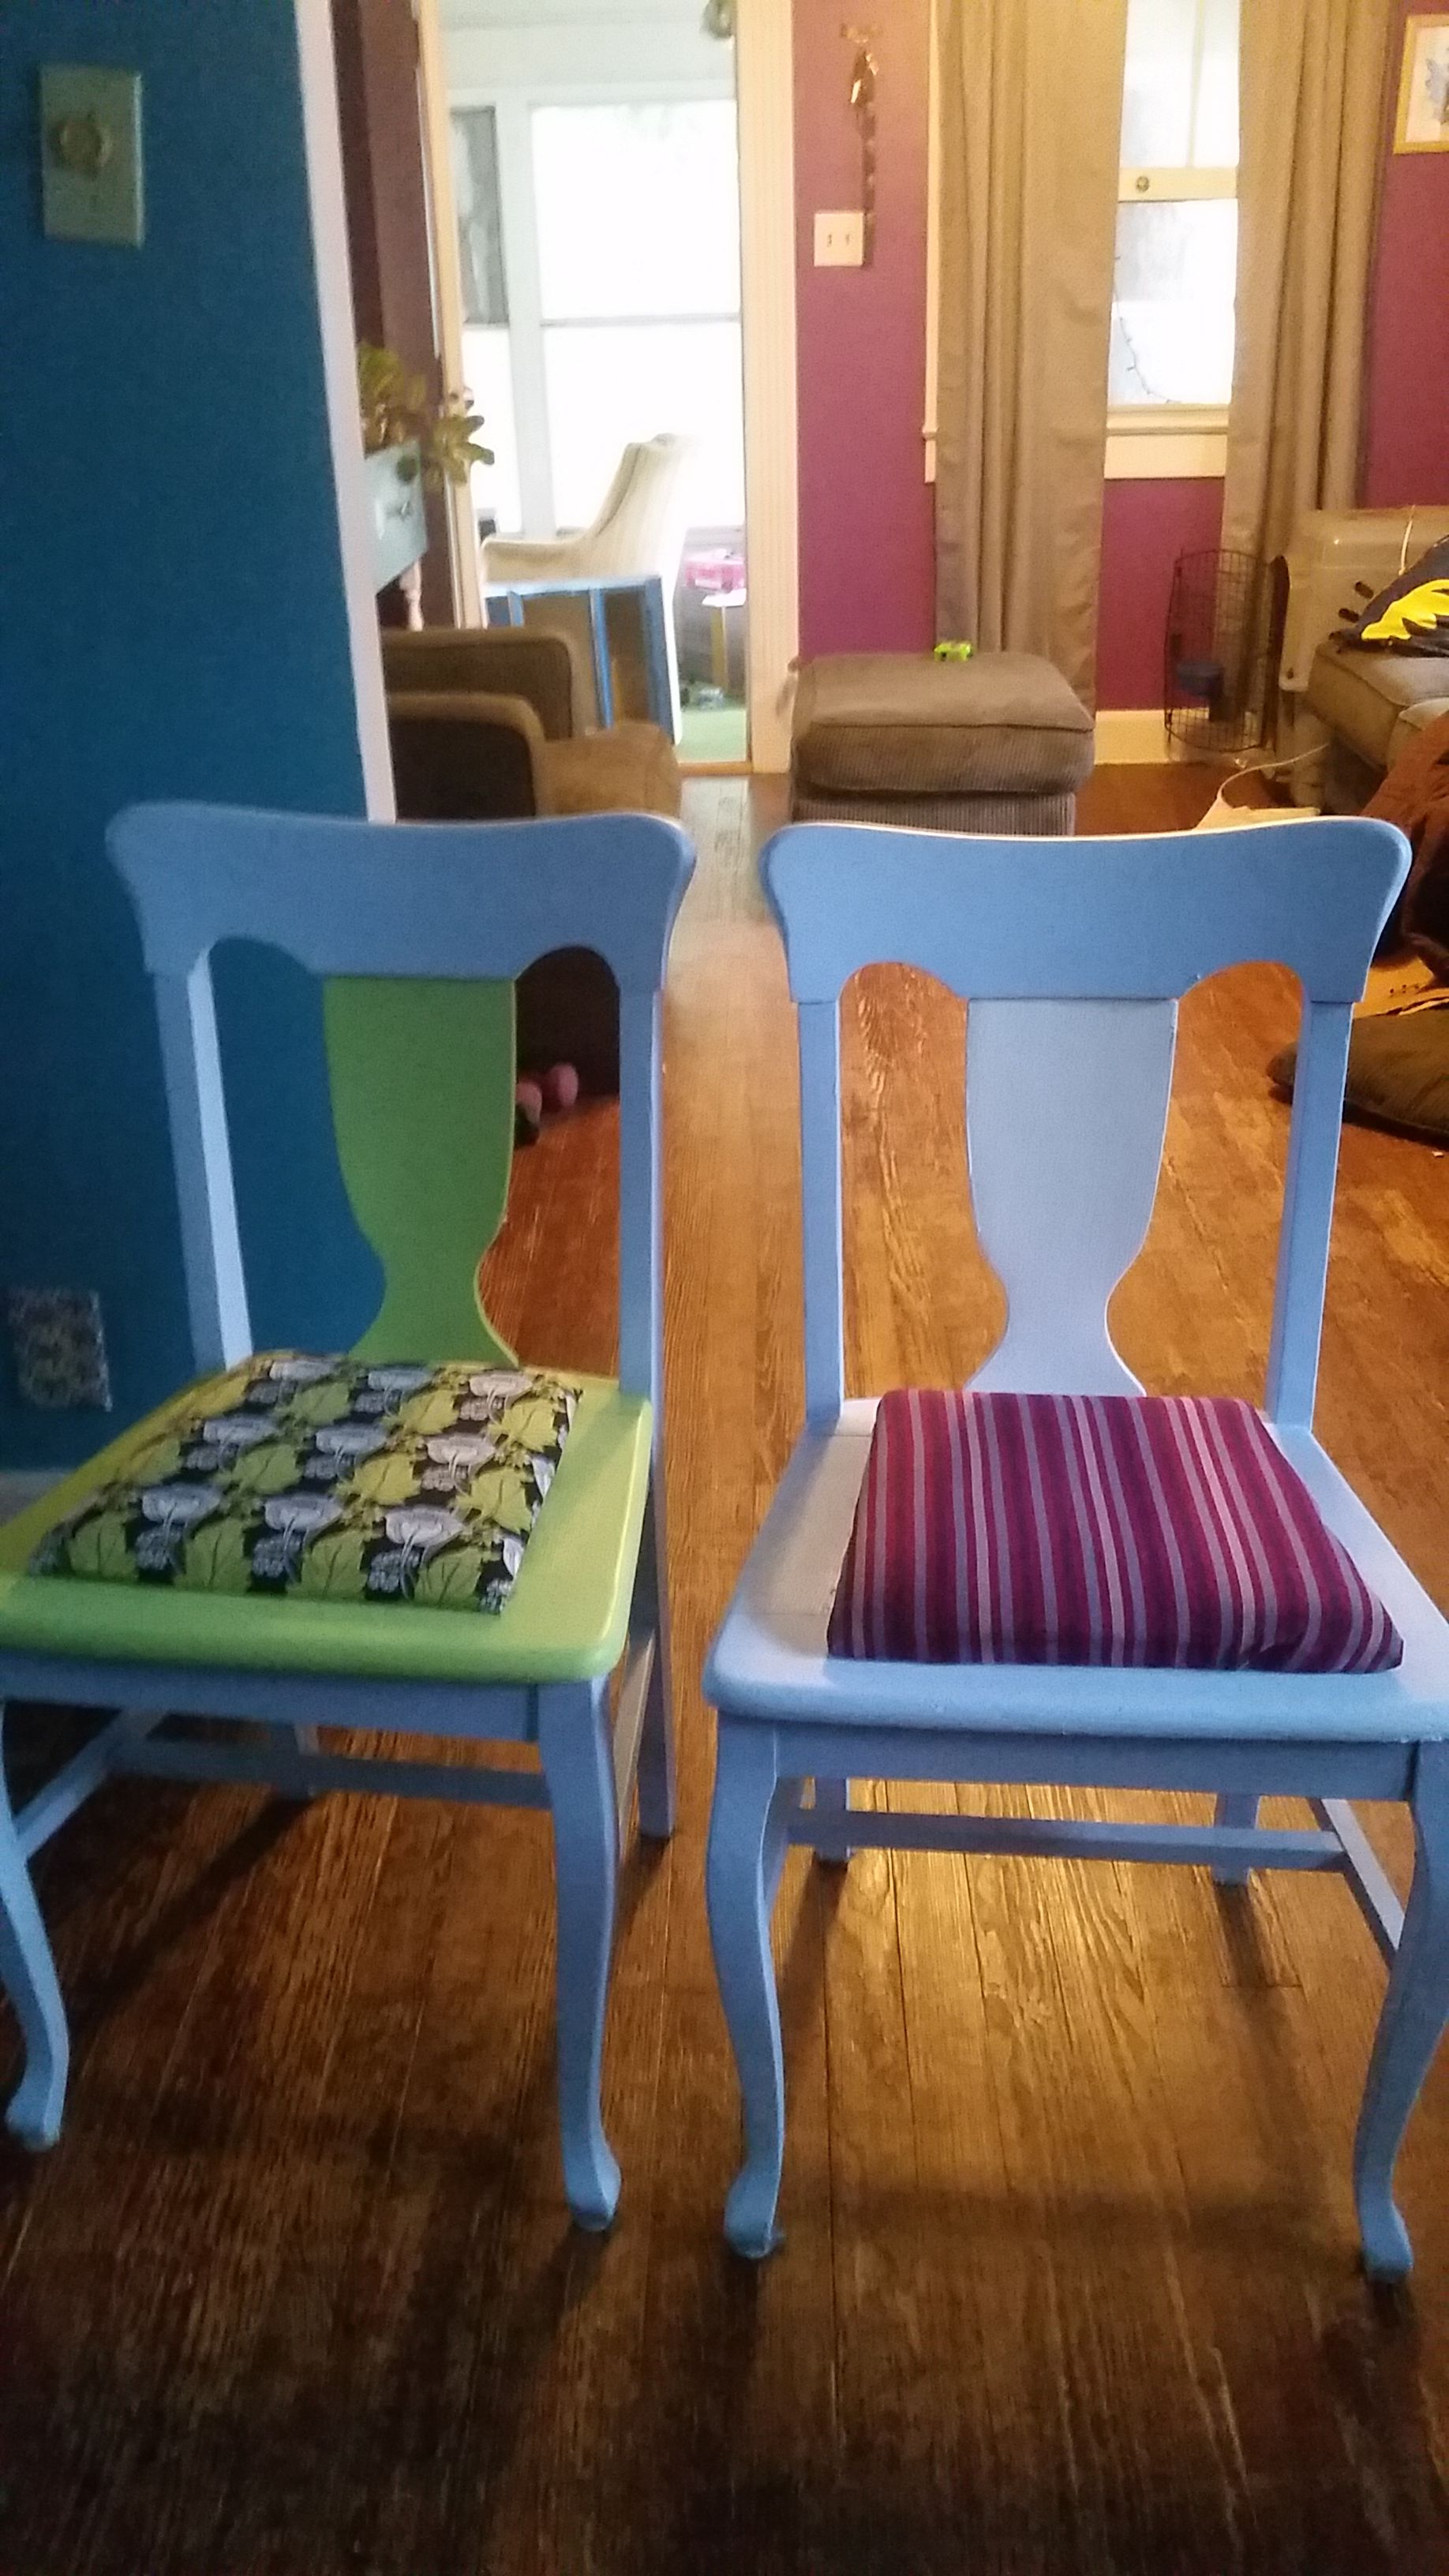 Pleasing Revamped Light Blue Dining Room Chairs In Shydogs Garage Home Interior And Landscaping Ologienasavecom